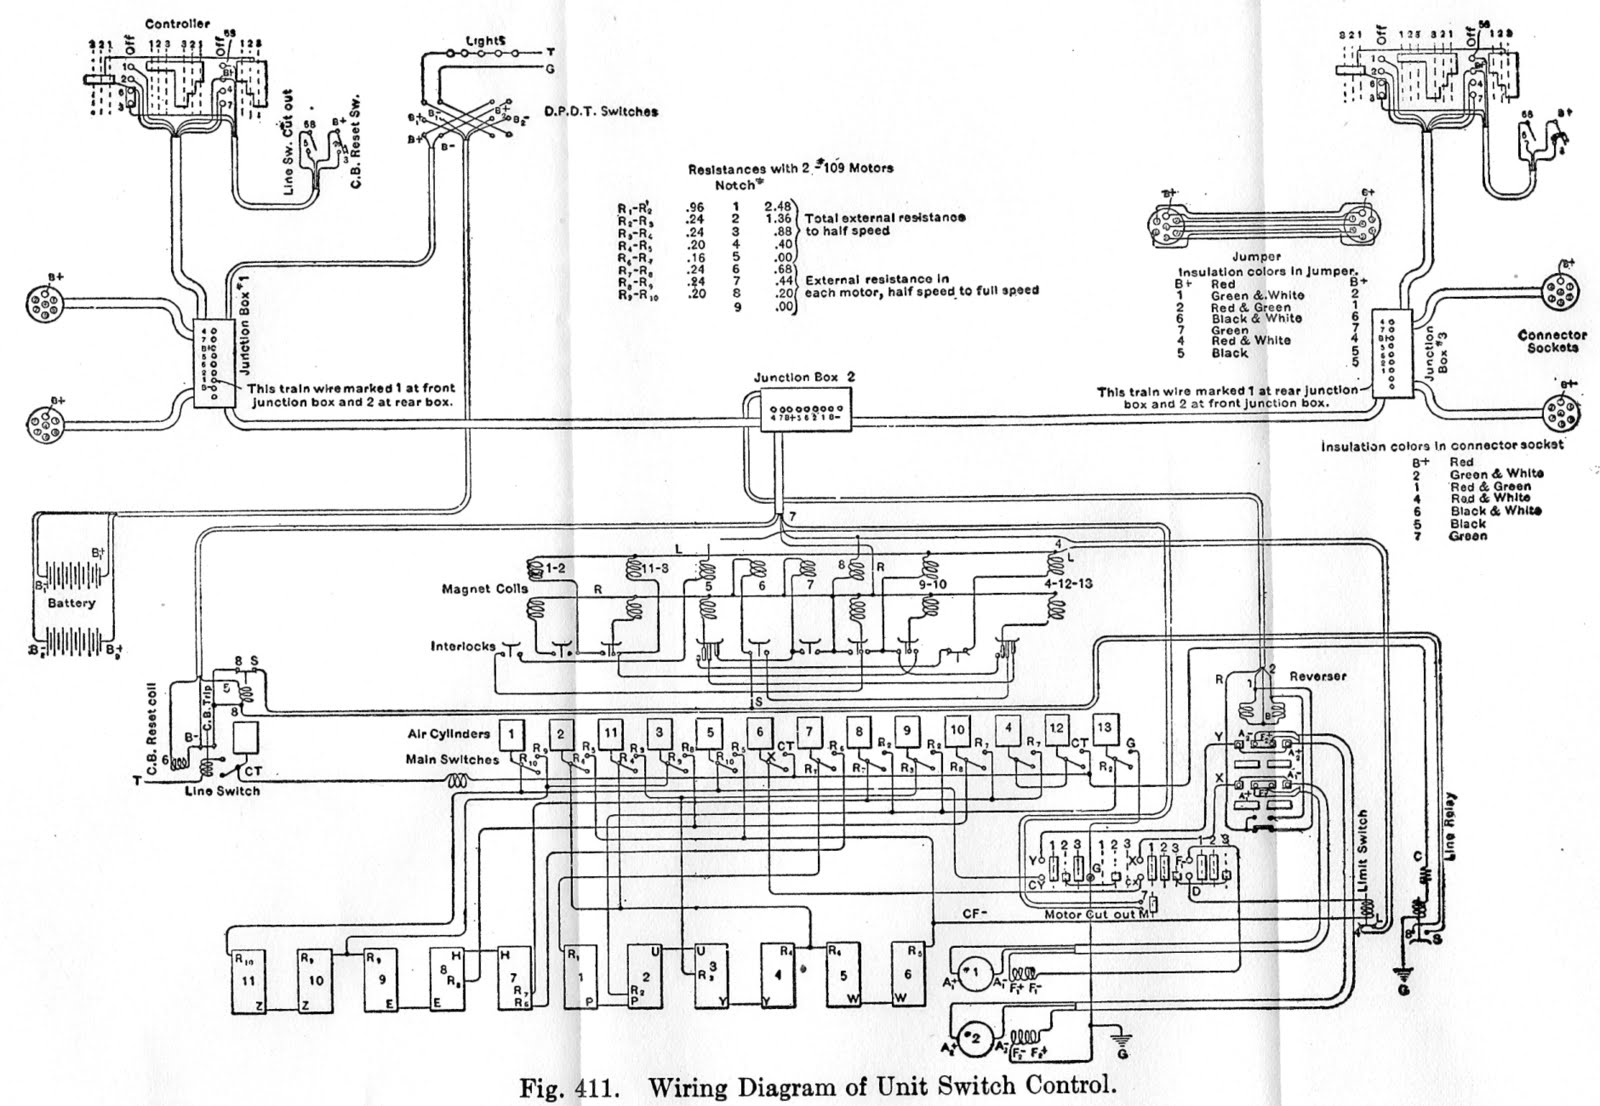 Hicks Car Works: Control Circuit Diagrams